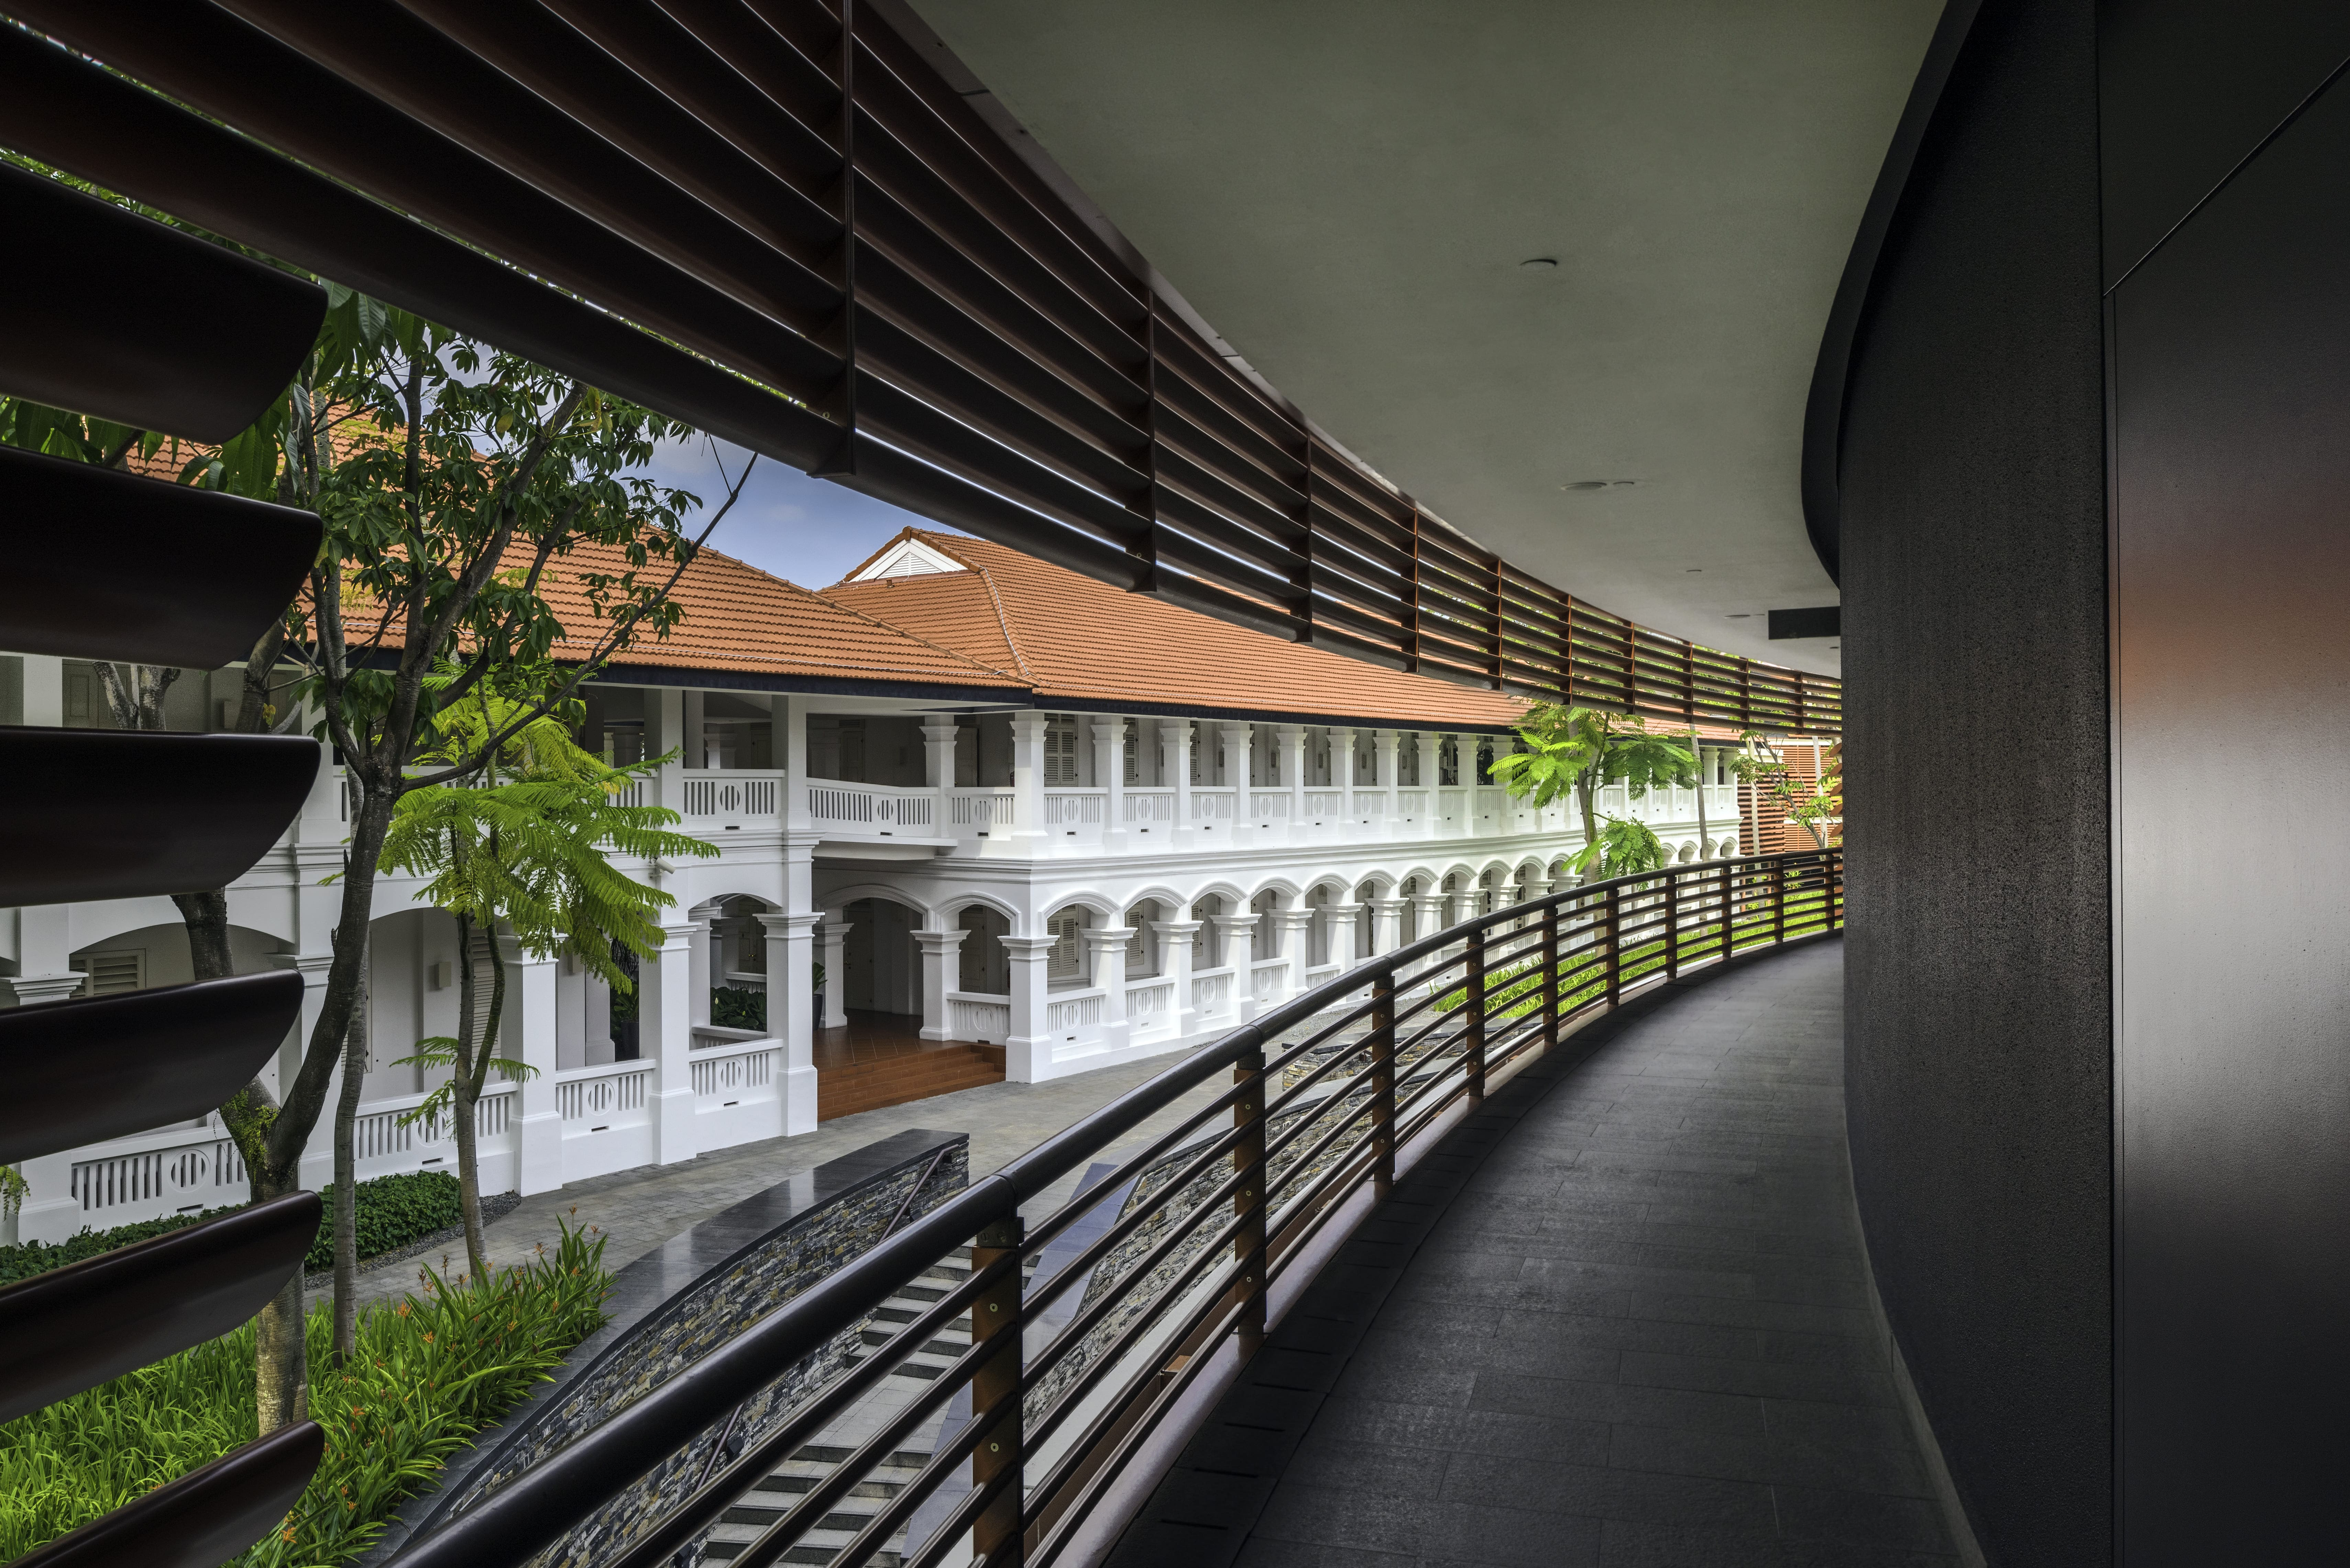 Capella-Singapore-View-of-Tanah-Merah-from-the-Contemporary-Extension-3